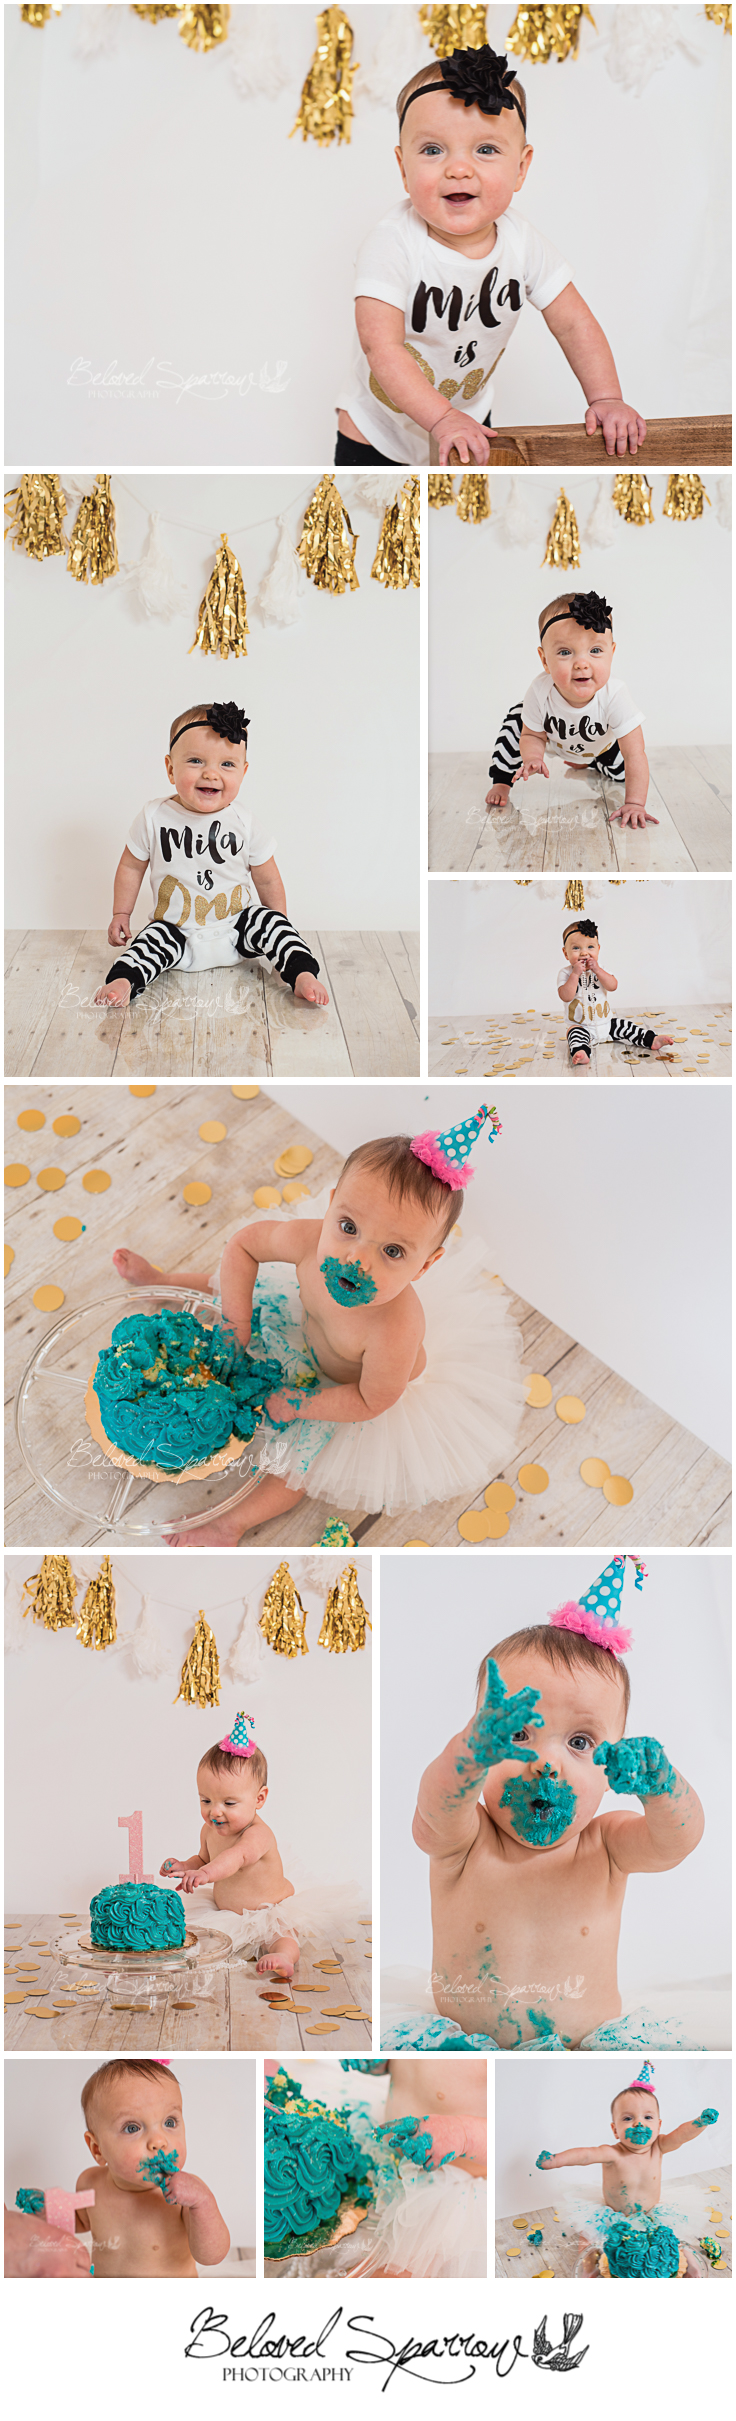 Forsyth County GA Cake Smash Photographer